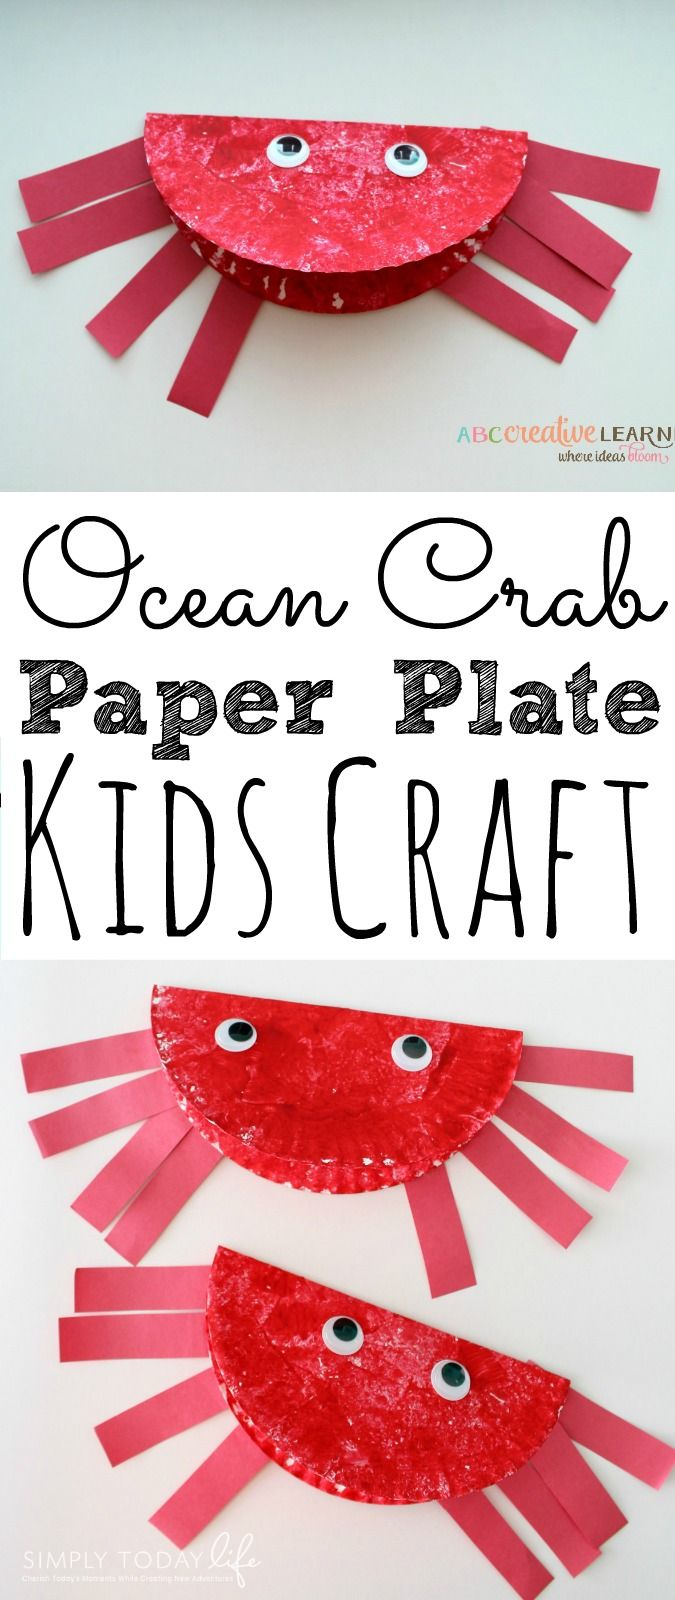 Looking for a fun summer craft? These Paper Plate Ocean Crab Craft For Kids are super easy to create! Plus, they are the perfect craft to go with your ocean or summer themed lesson! - simplytodaylife.com via @SimplyTodayLife